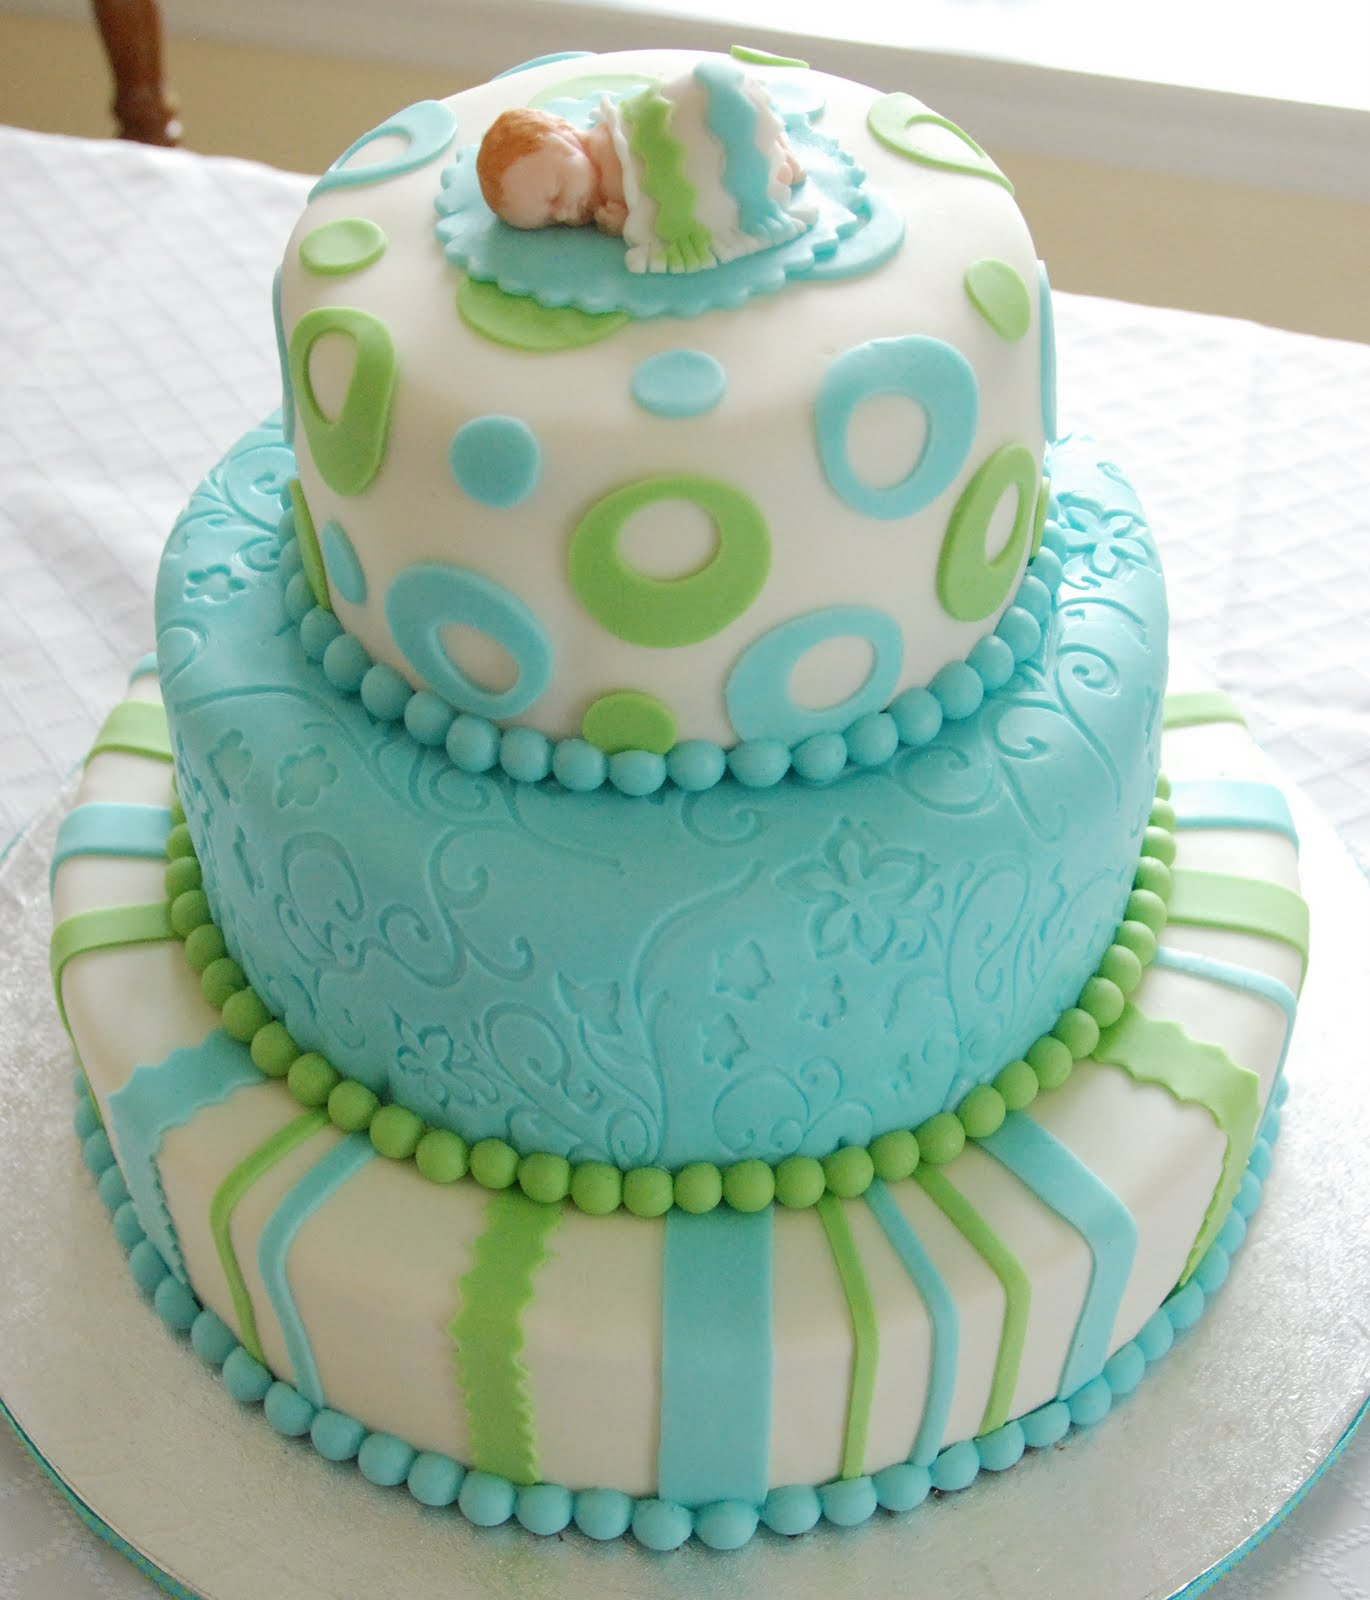 Glamorous Green And Blue Baby Shower | Baby Interior Design intended for Beautiful Blue And Green Baby Shower